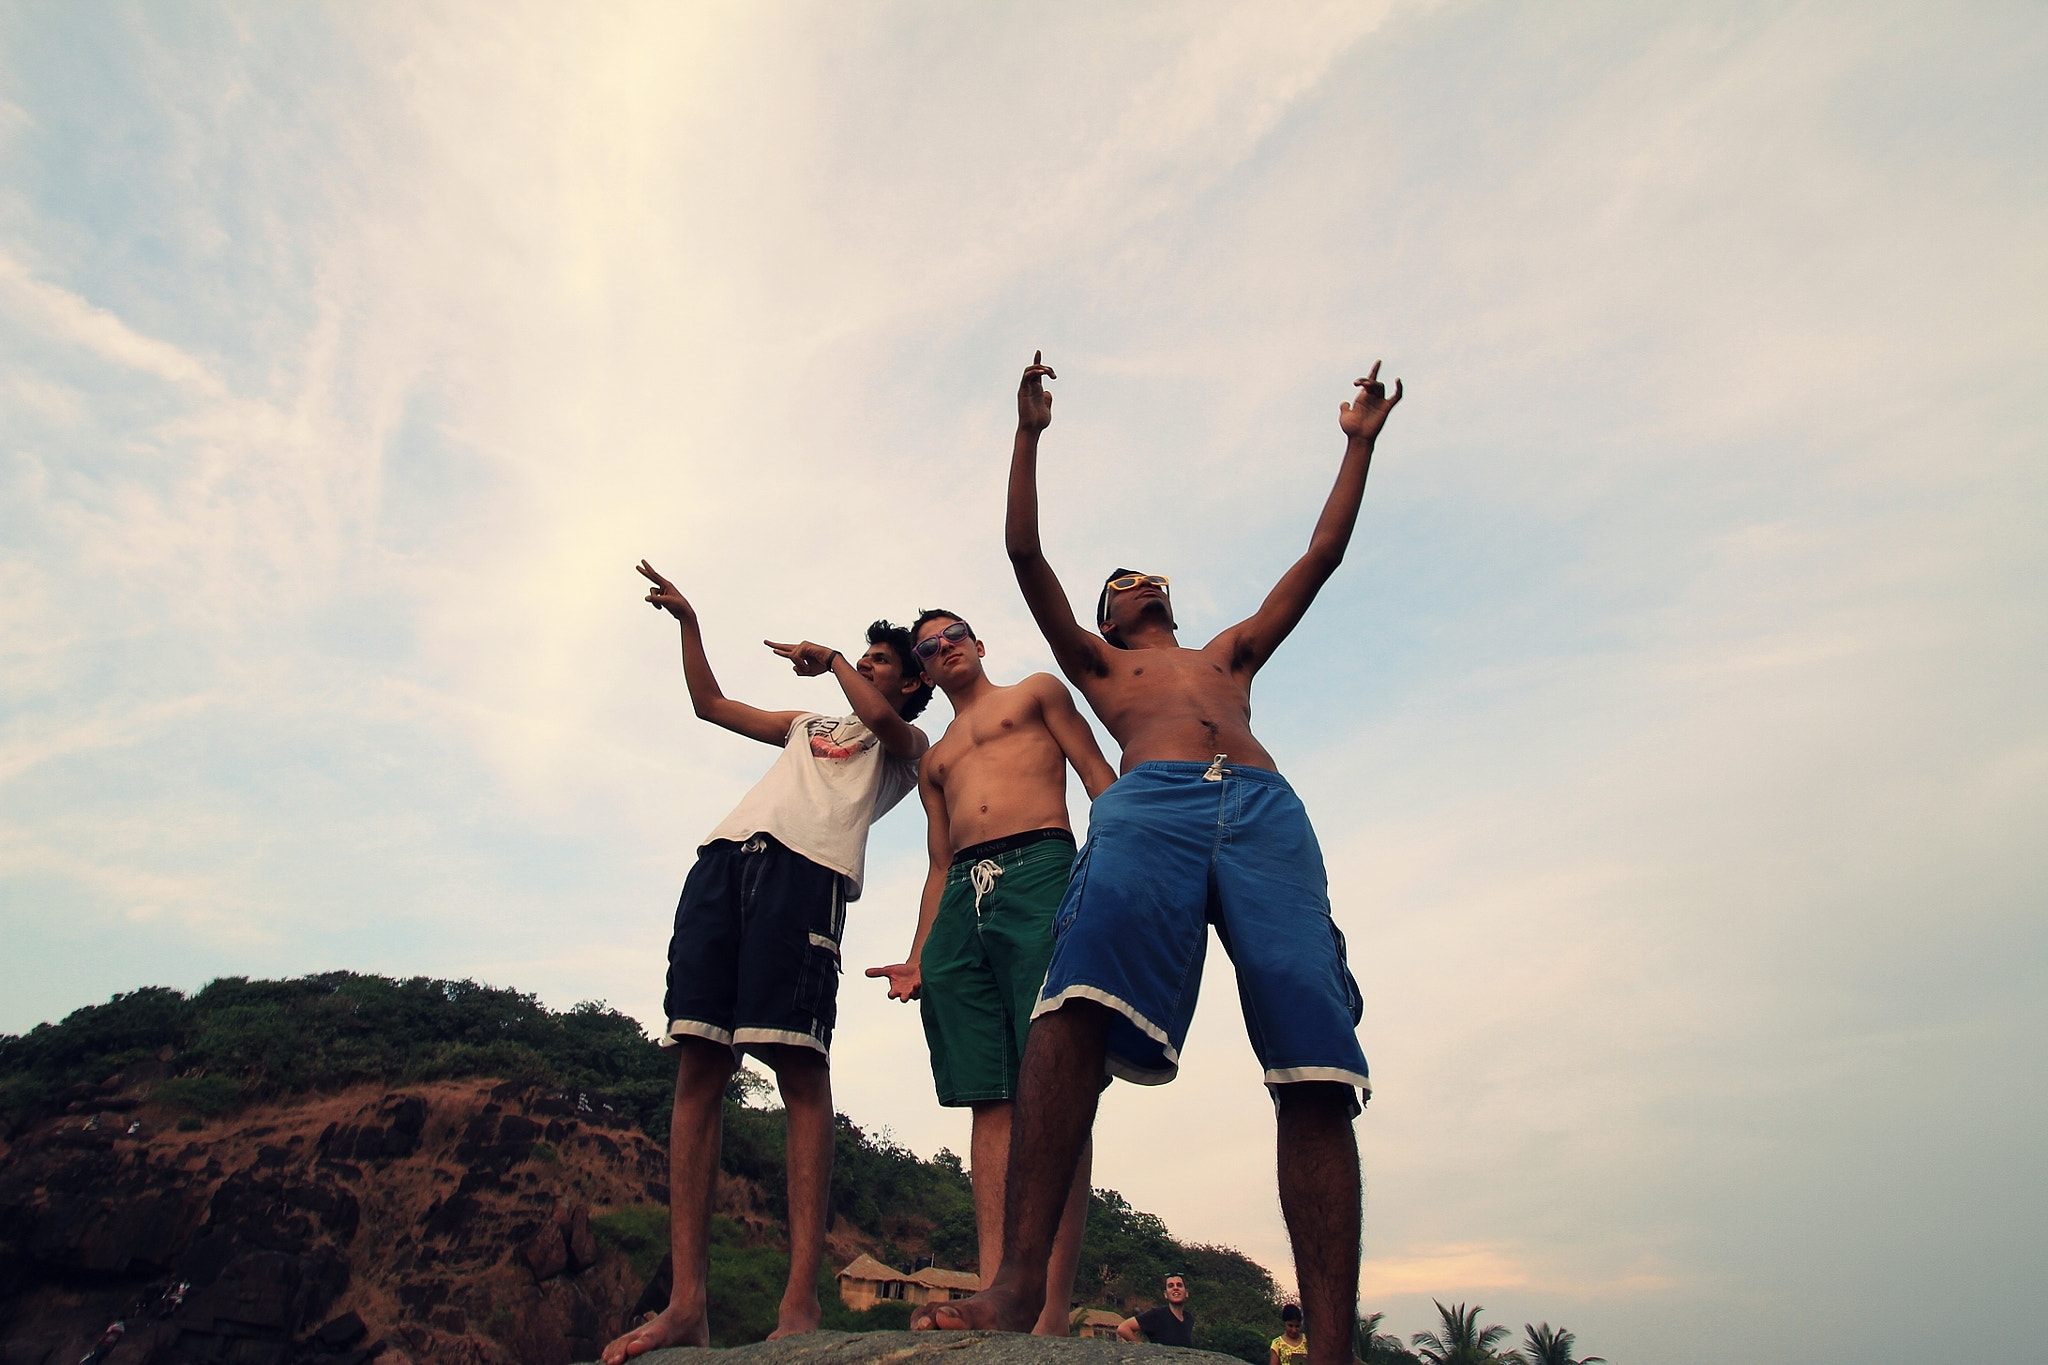 Photograph men in shorts by Dhruv Ashra on 500px